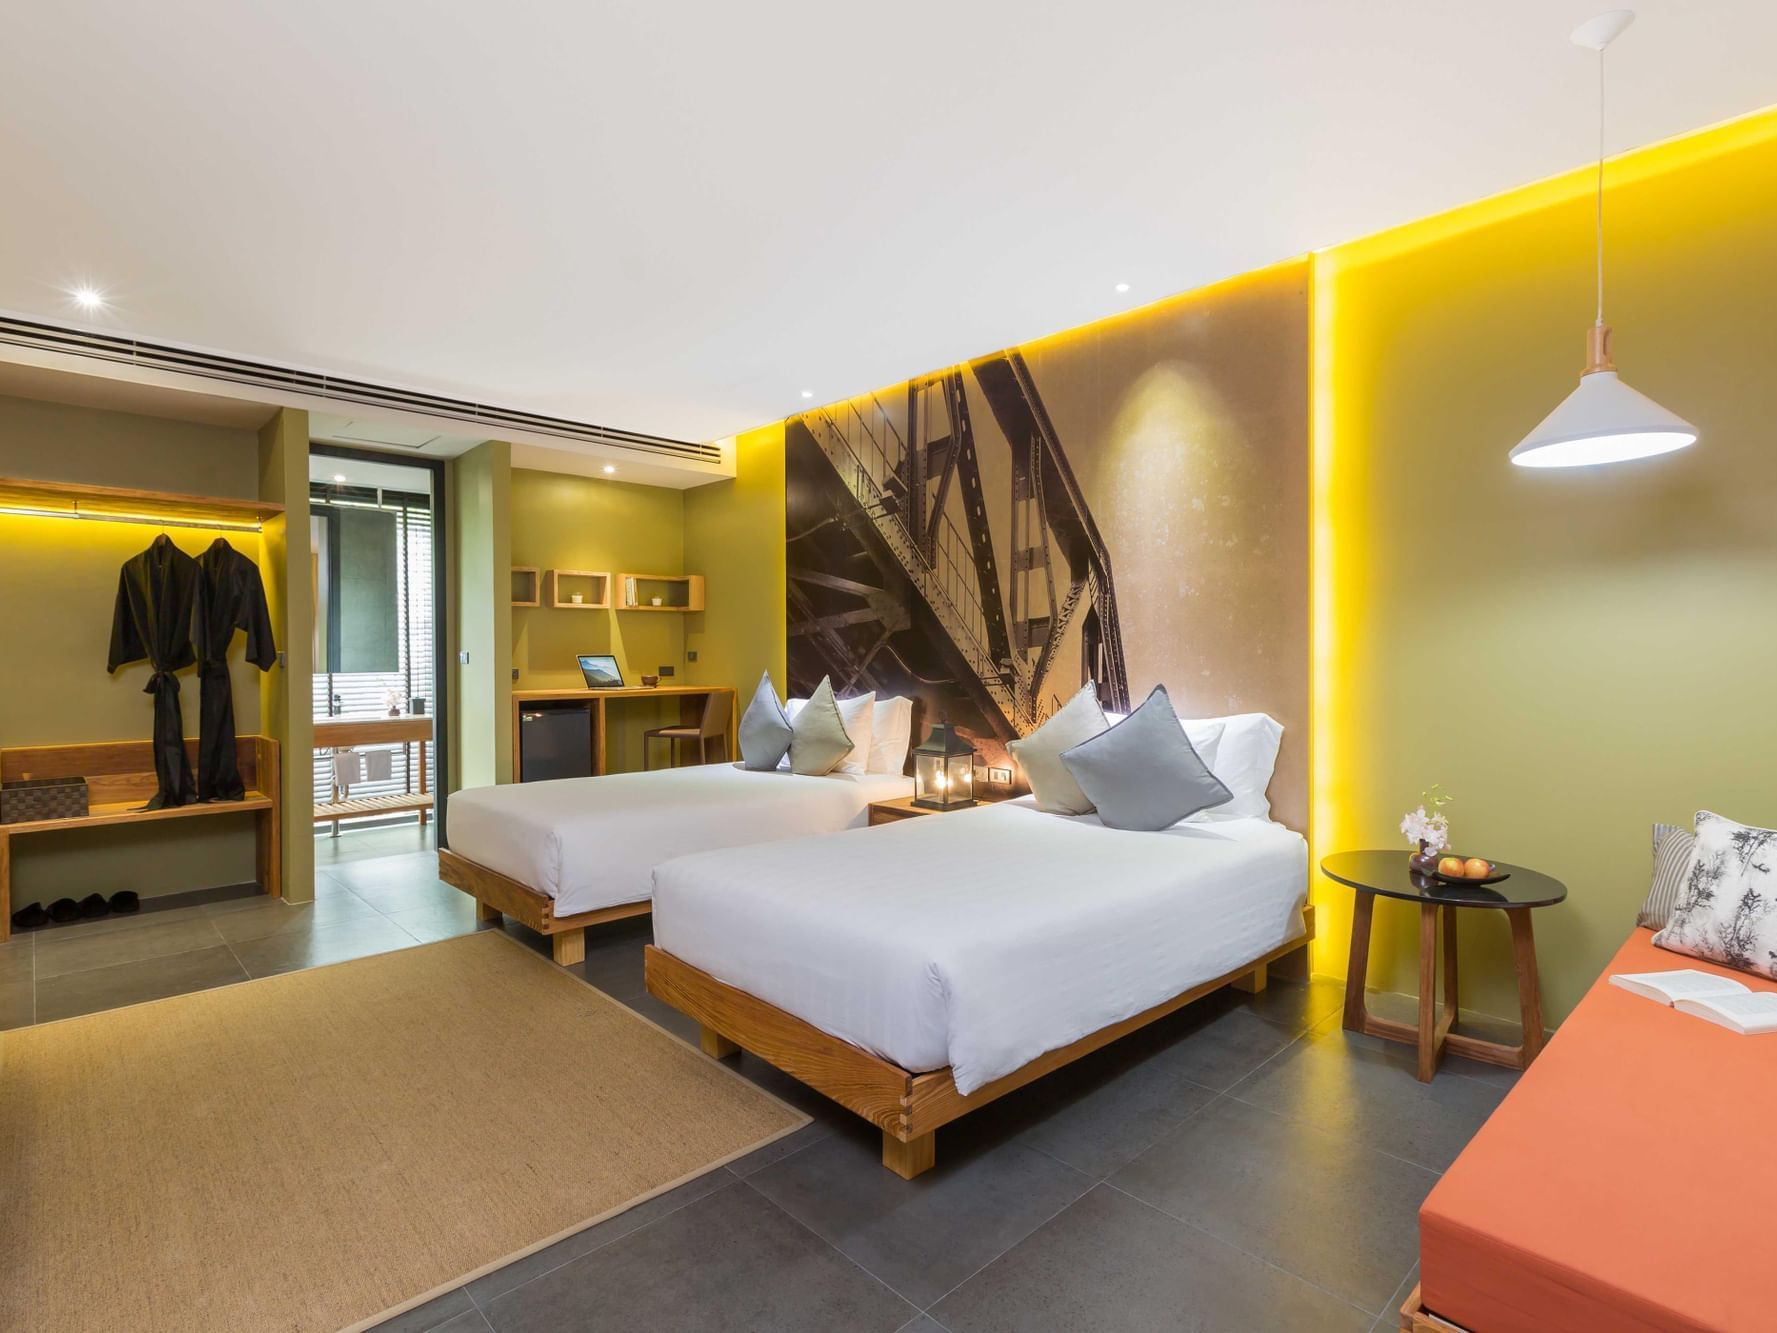 Deluxe Family room at U Hotels and Resorts